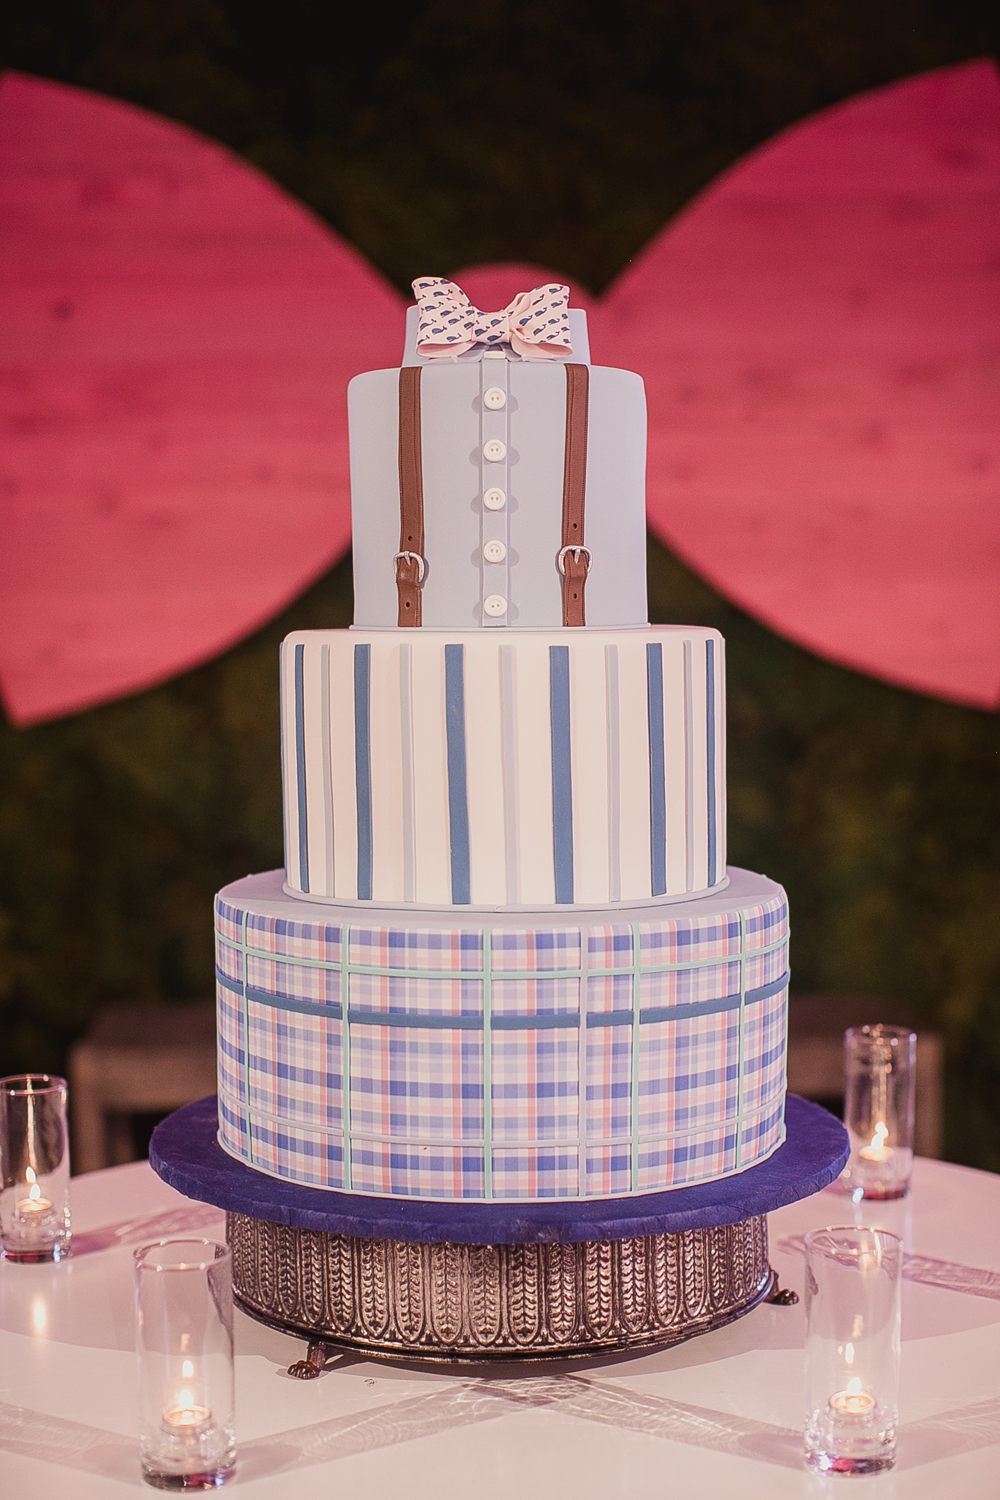 preppy groom's cake with button-up shirt, suspenders, bow tie made from fondant